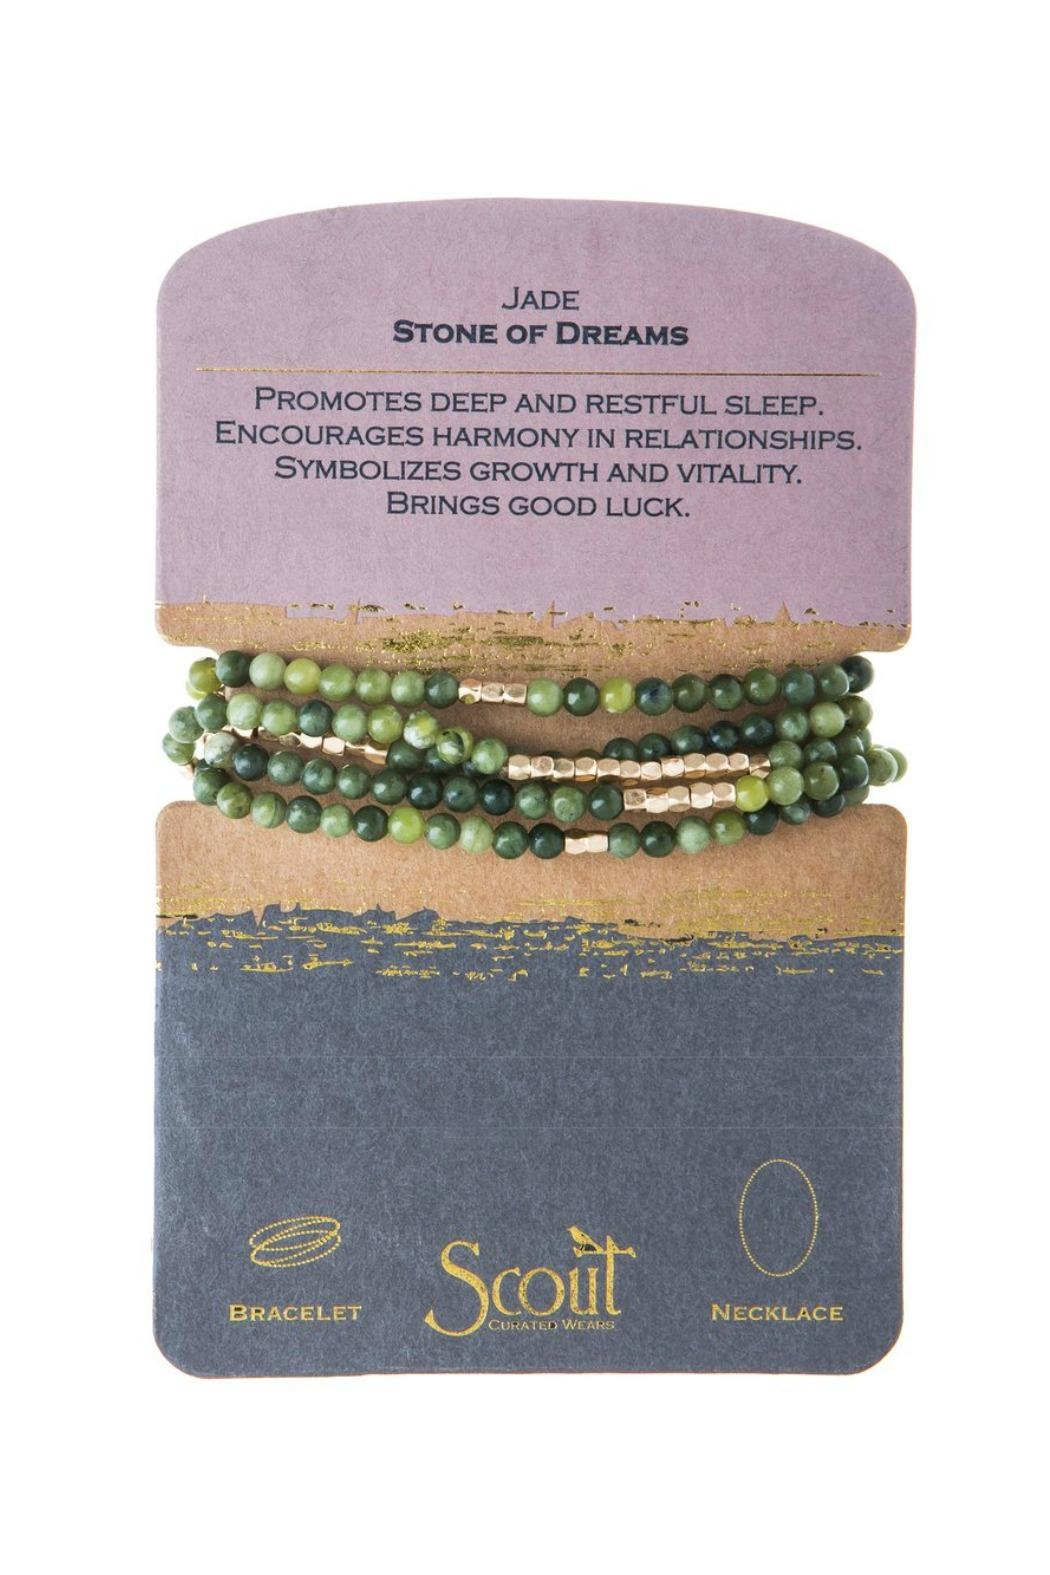 Scout CURATED WEARS Stone Of Dreams - Main Image